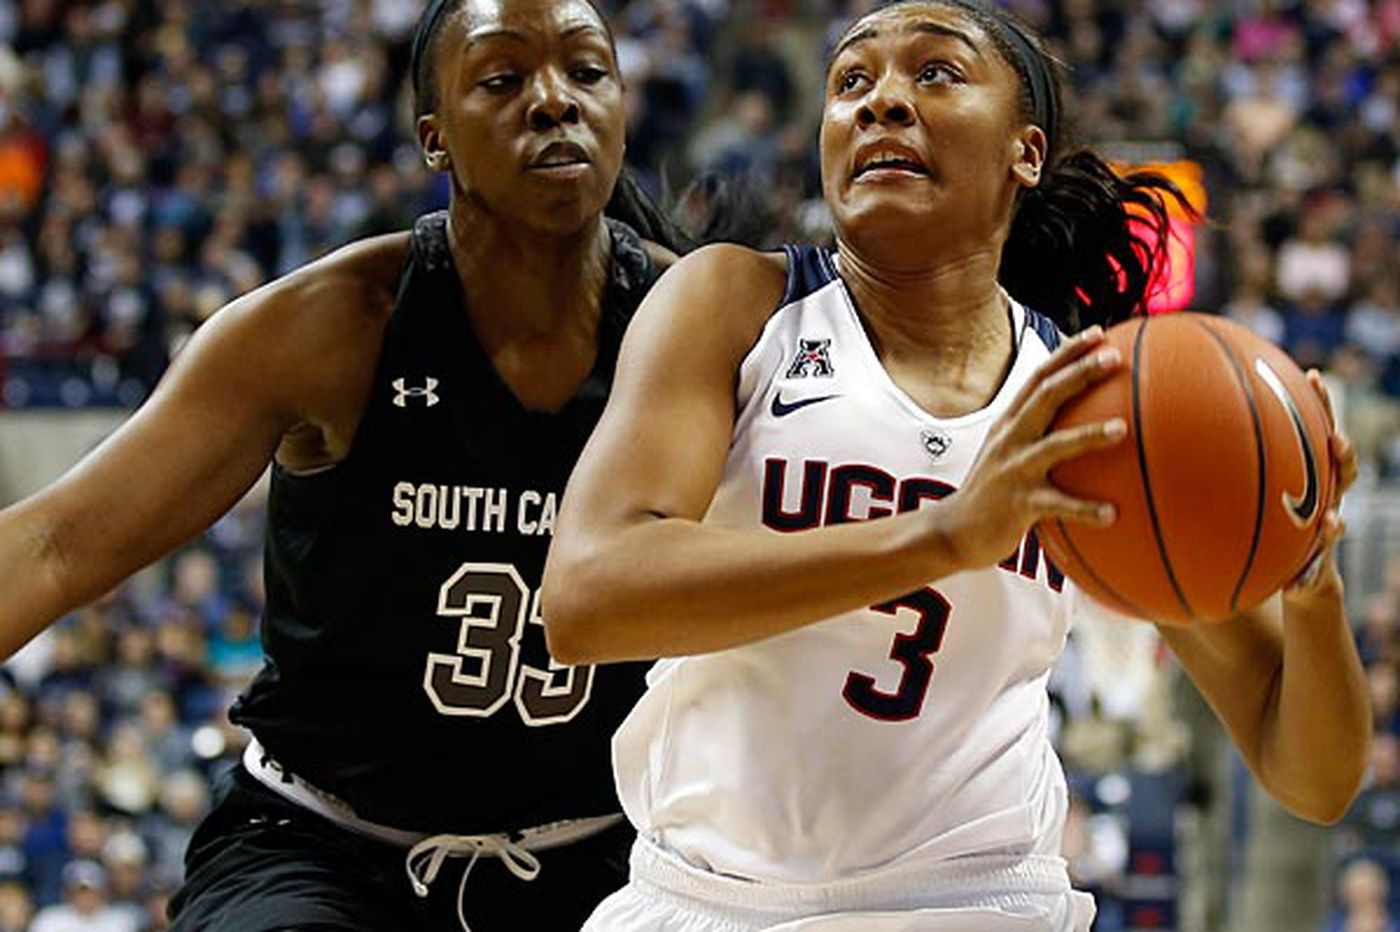 Dominant UConn is taking all the excitement out of women's basketball